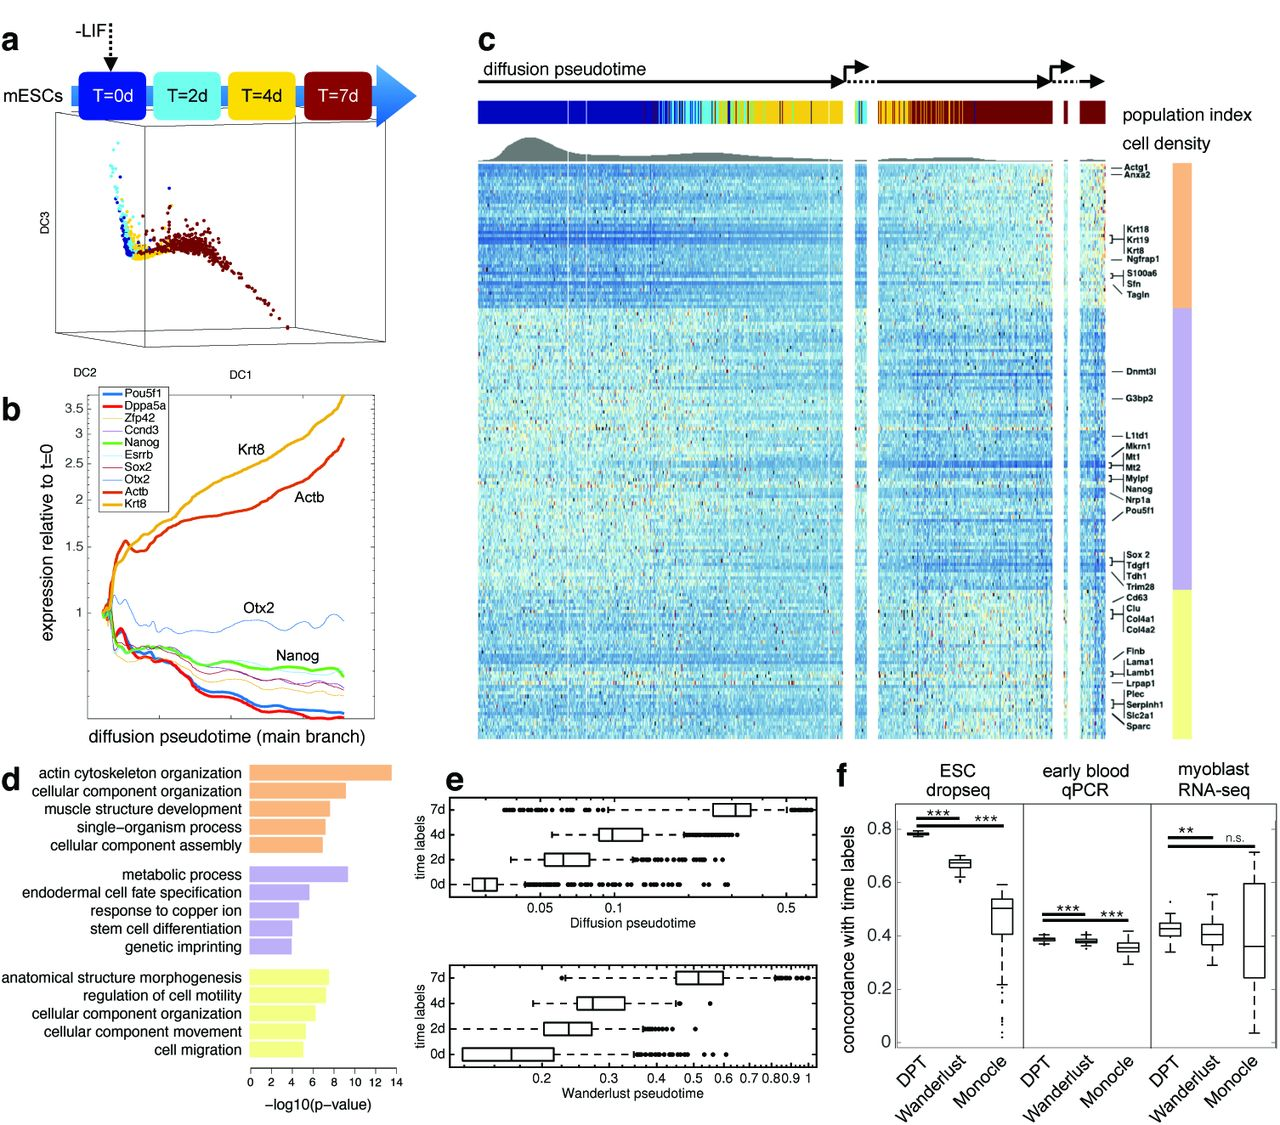 Diffusion pseudotime robustly reconstructs lineage branching | bioRxiv